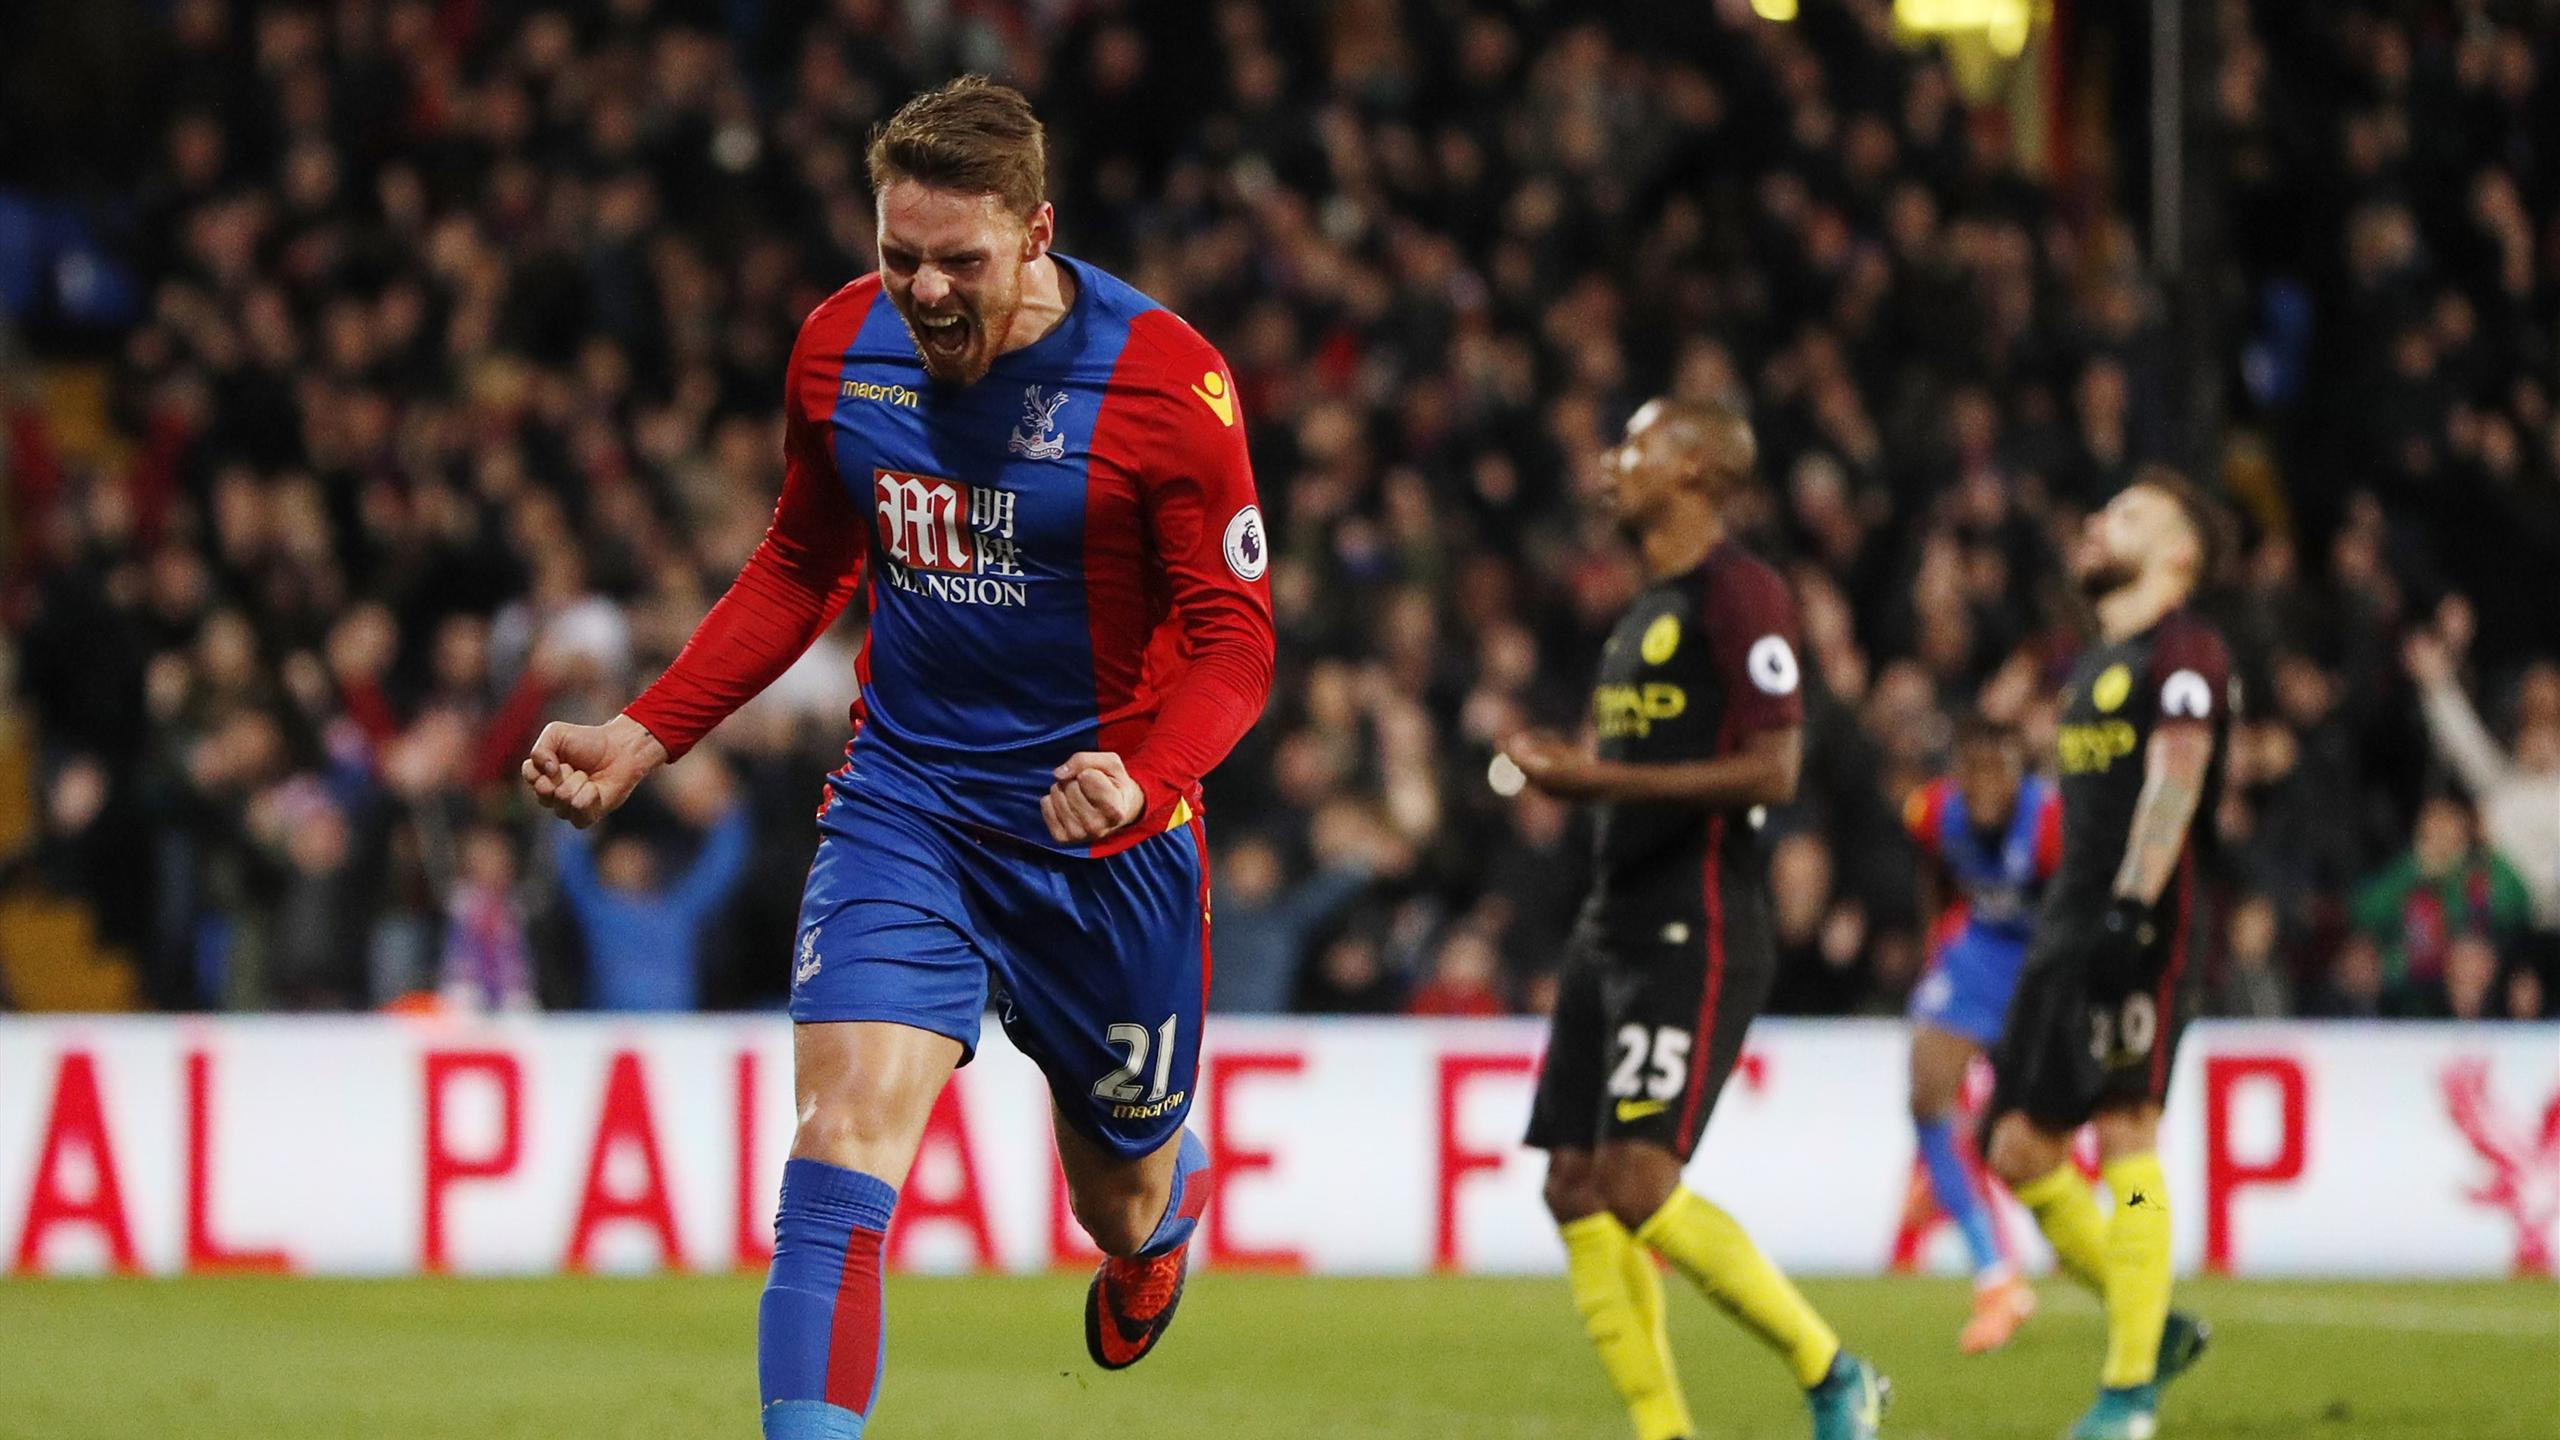 Crystal Palace's Connor Wickham celebrates scoring their first goal